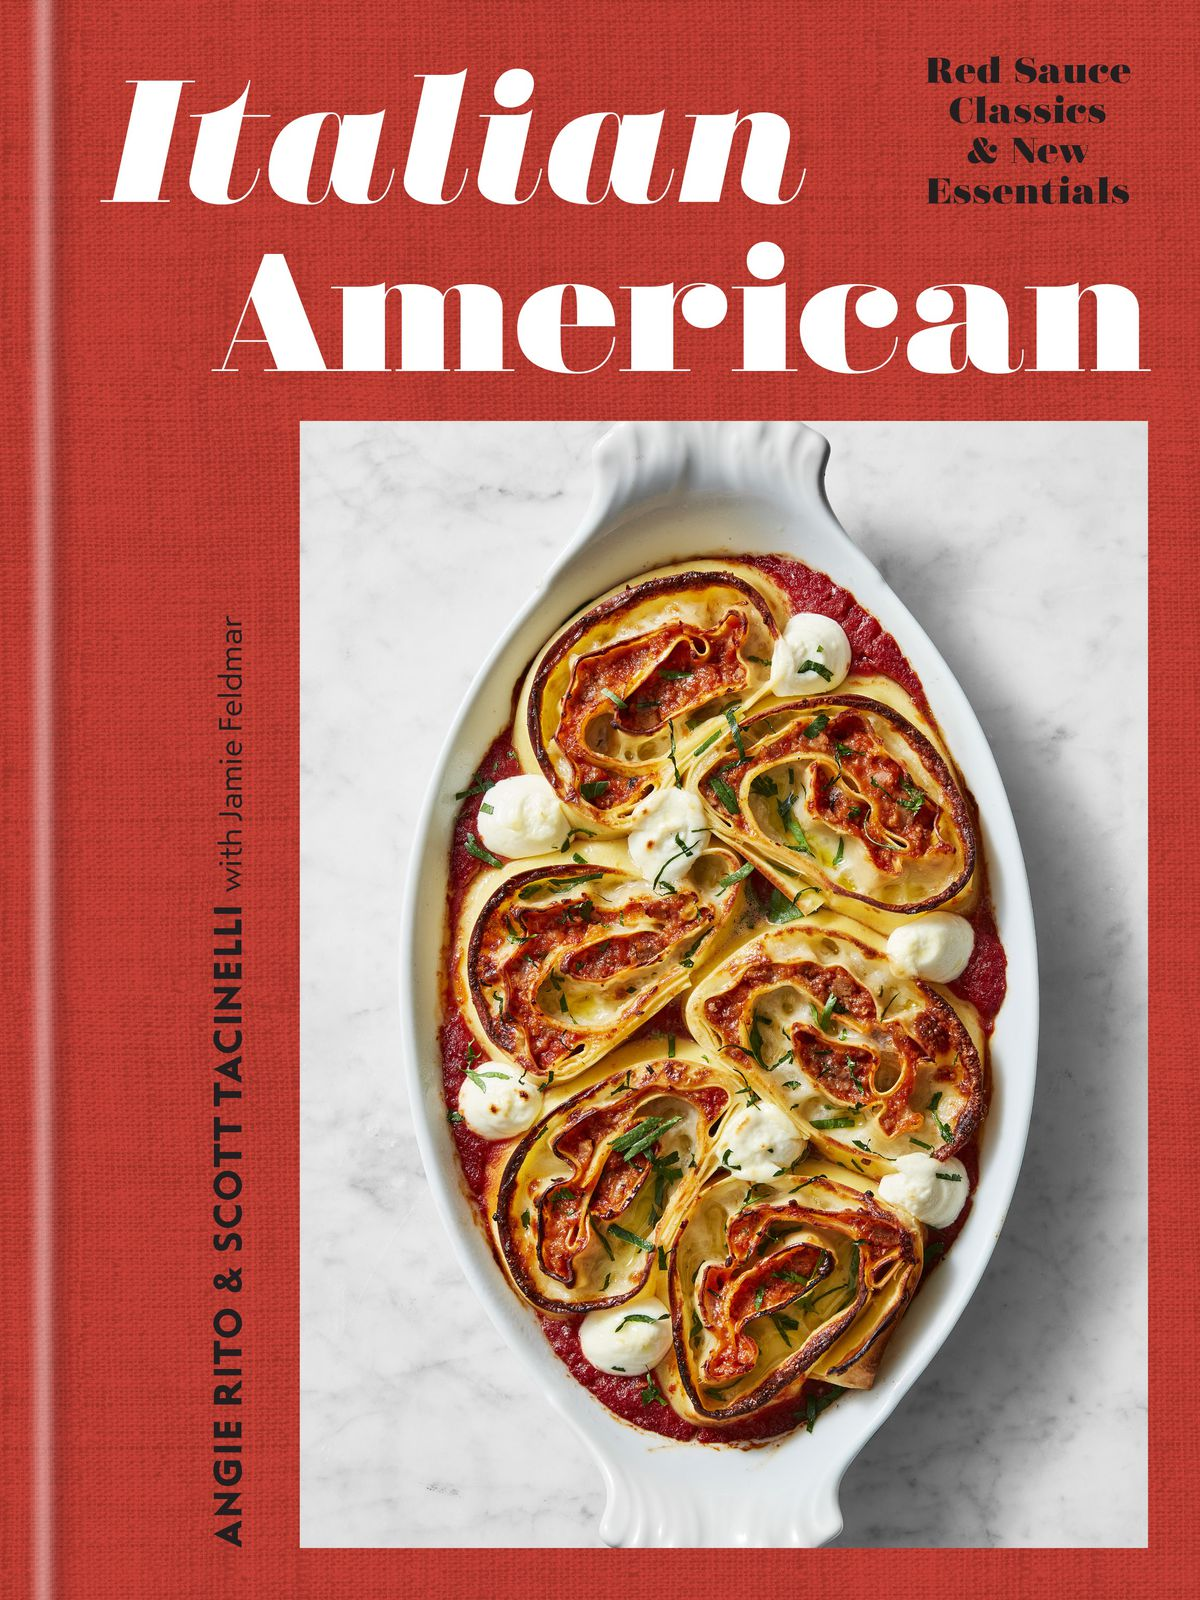 A cookbook cover with a dish of spiral lasagna